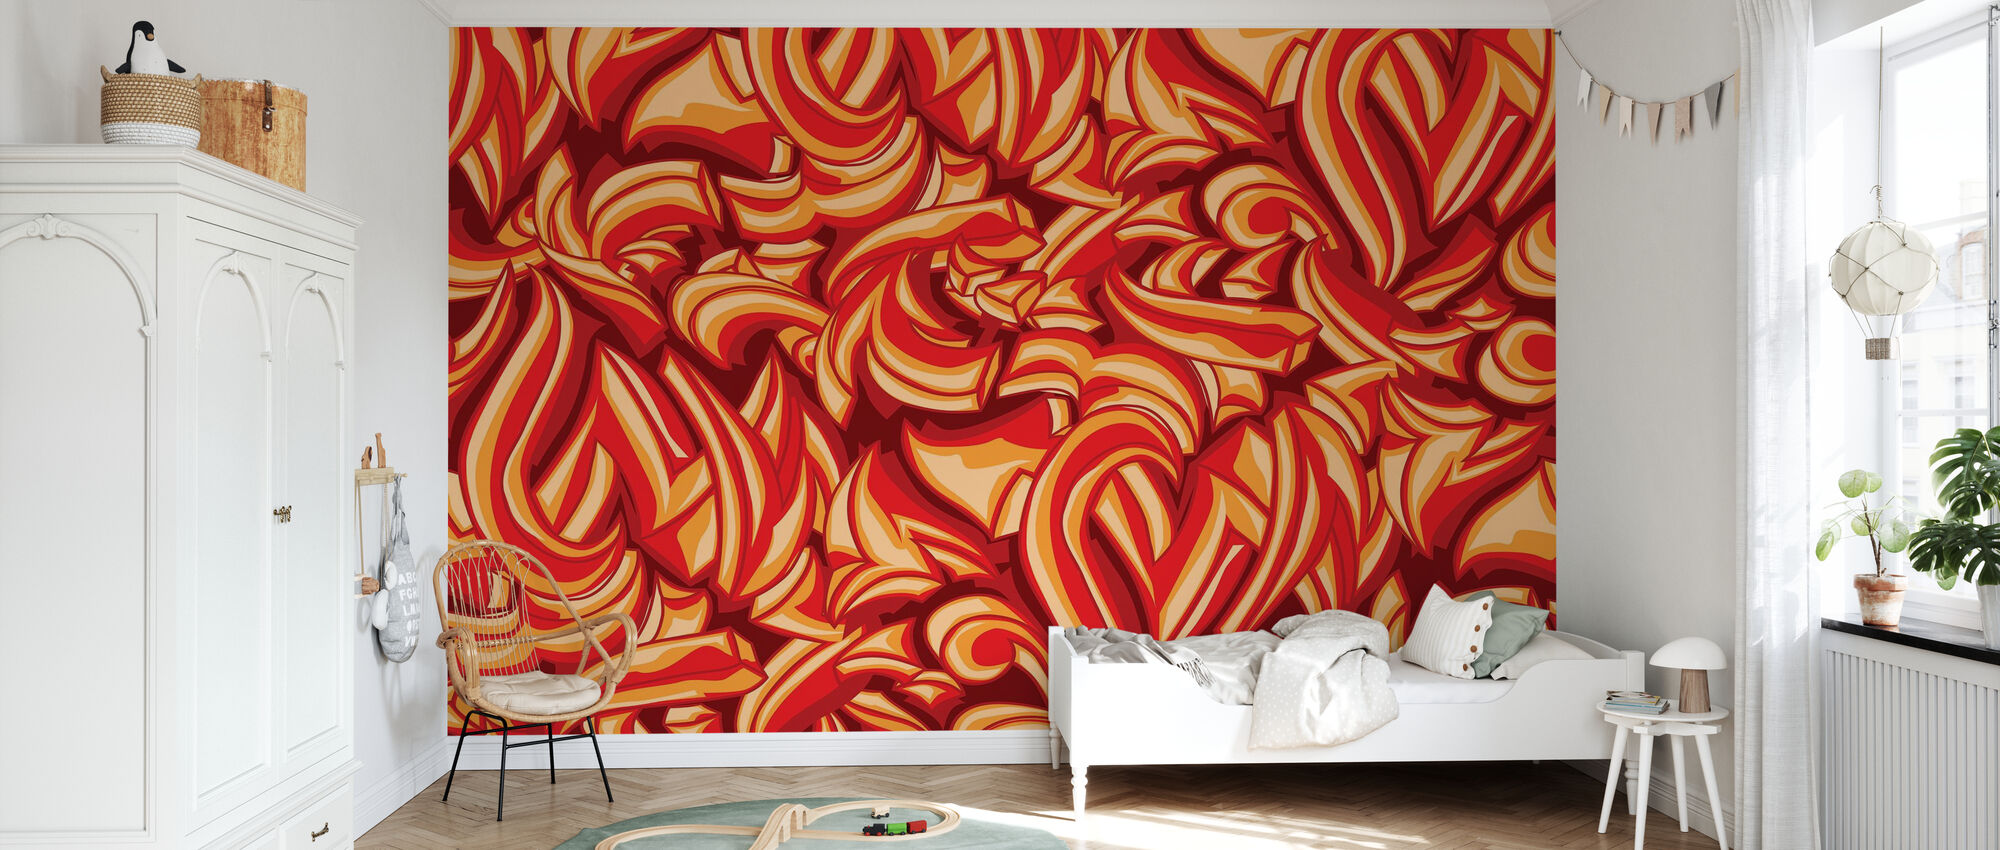 Sketchy Splat Graffiti - Wallpaper - Kids Room